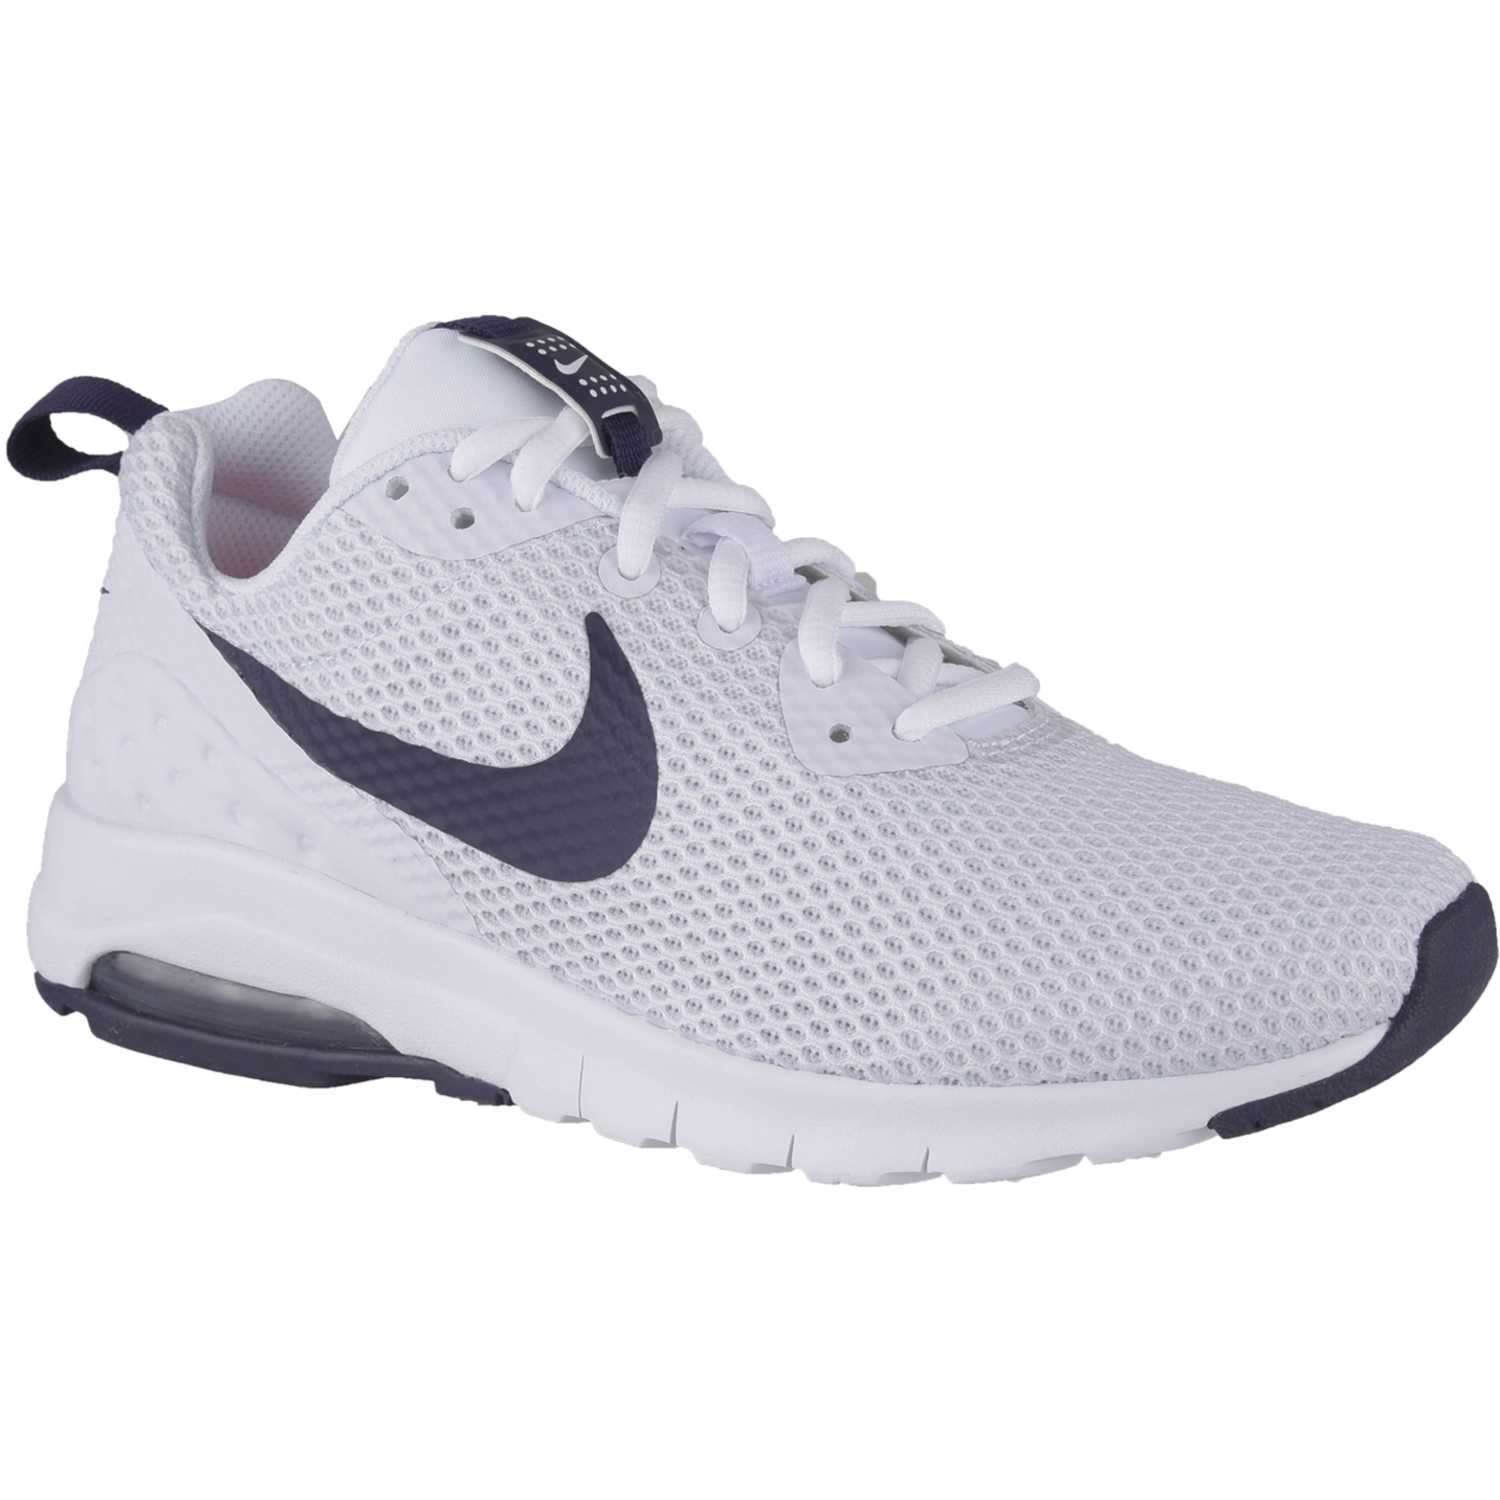 on sale 4c095 af828 Zapatilla de Mujer Nike Blanco / negro wmns air max motion lw se ...